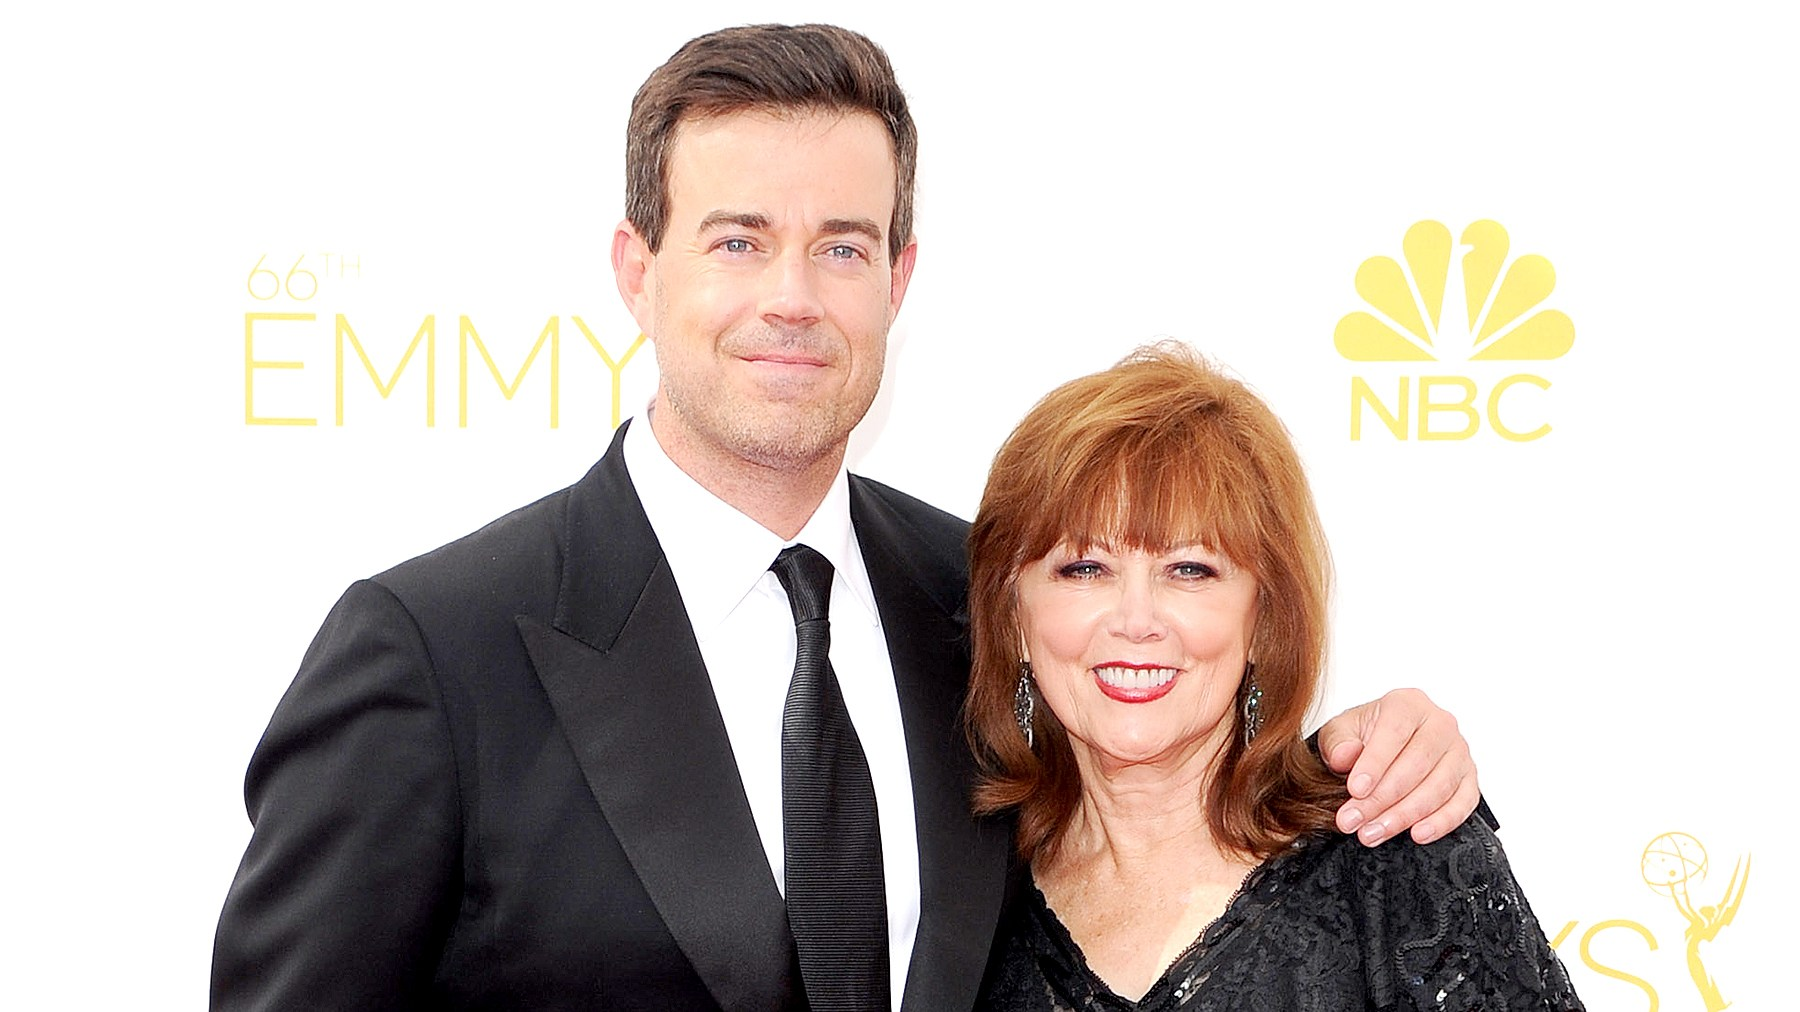 Carson Daly and Pattie Daly Caruso arrive at the 66th Annual Primetime Emmy Awards at Nokia Theatre L.A. Live on August 25, 2014 in Los Angeles, California.